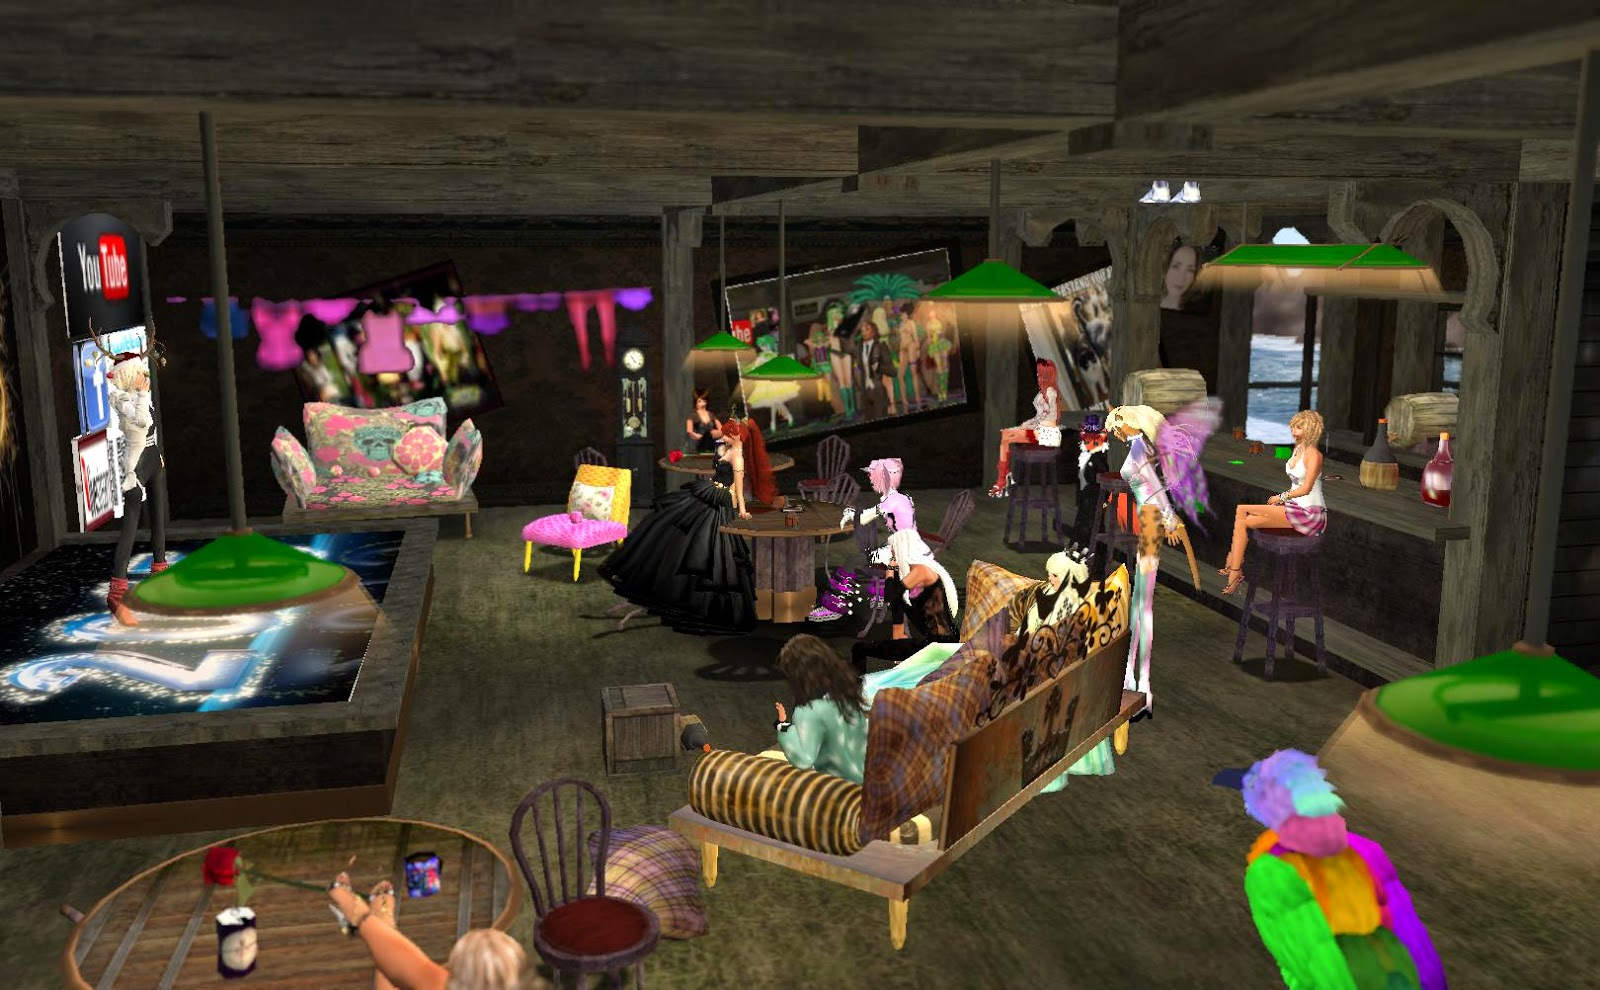 dating places in second life We provide information about available 3d chat worlds and virtual life games for teenagers we feature fun and cute pet and animal virtual worlds, virtual chat and multiplayer worlds, fashion worlds and more some teen worlds are educational, some are anime, or fantasy, or only for girls.